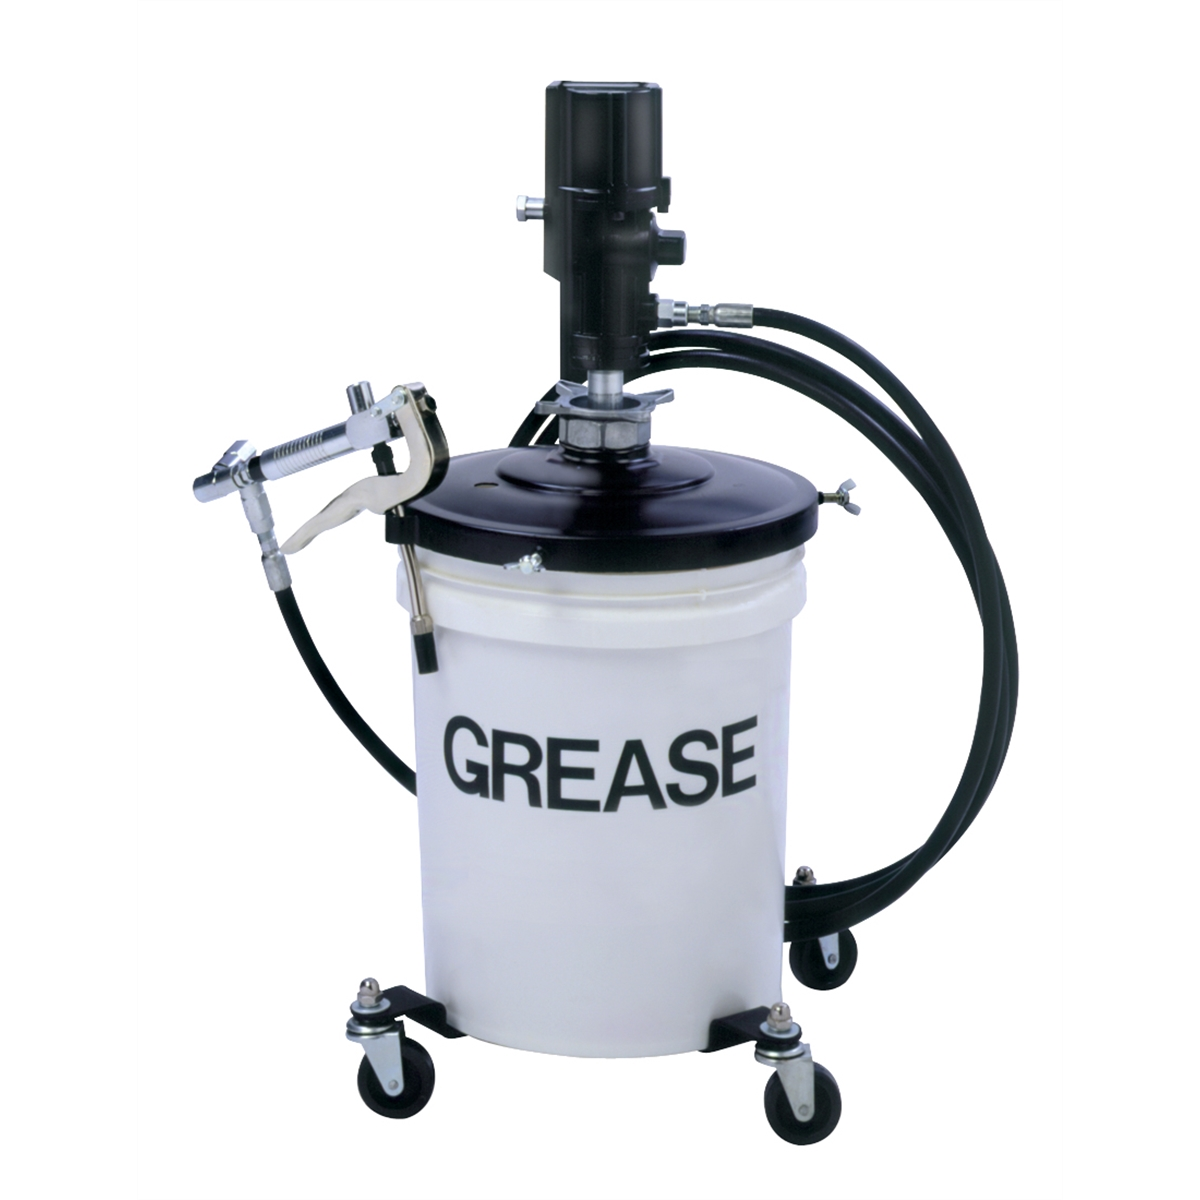 Maxi Lube 55:1 Ratio Grease Pump for 35Lb. Pail